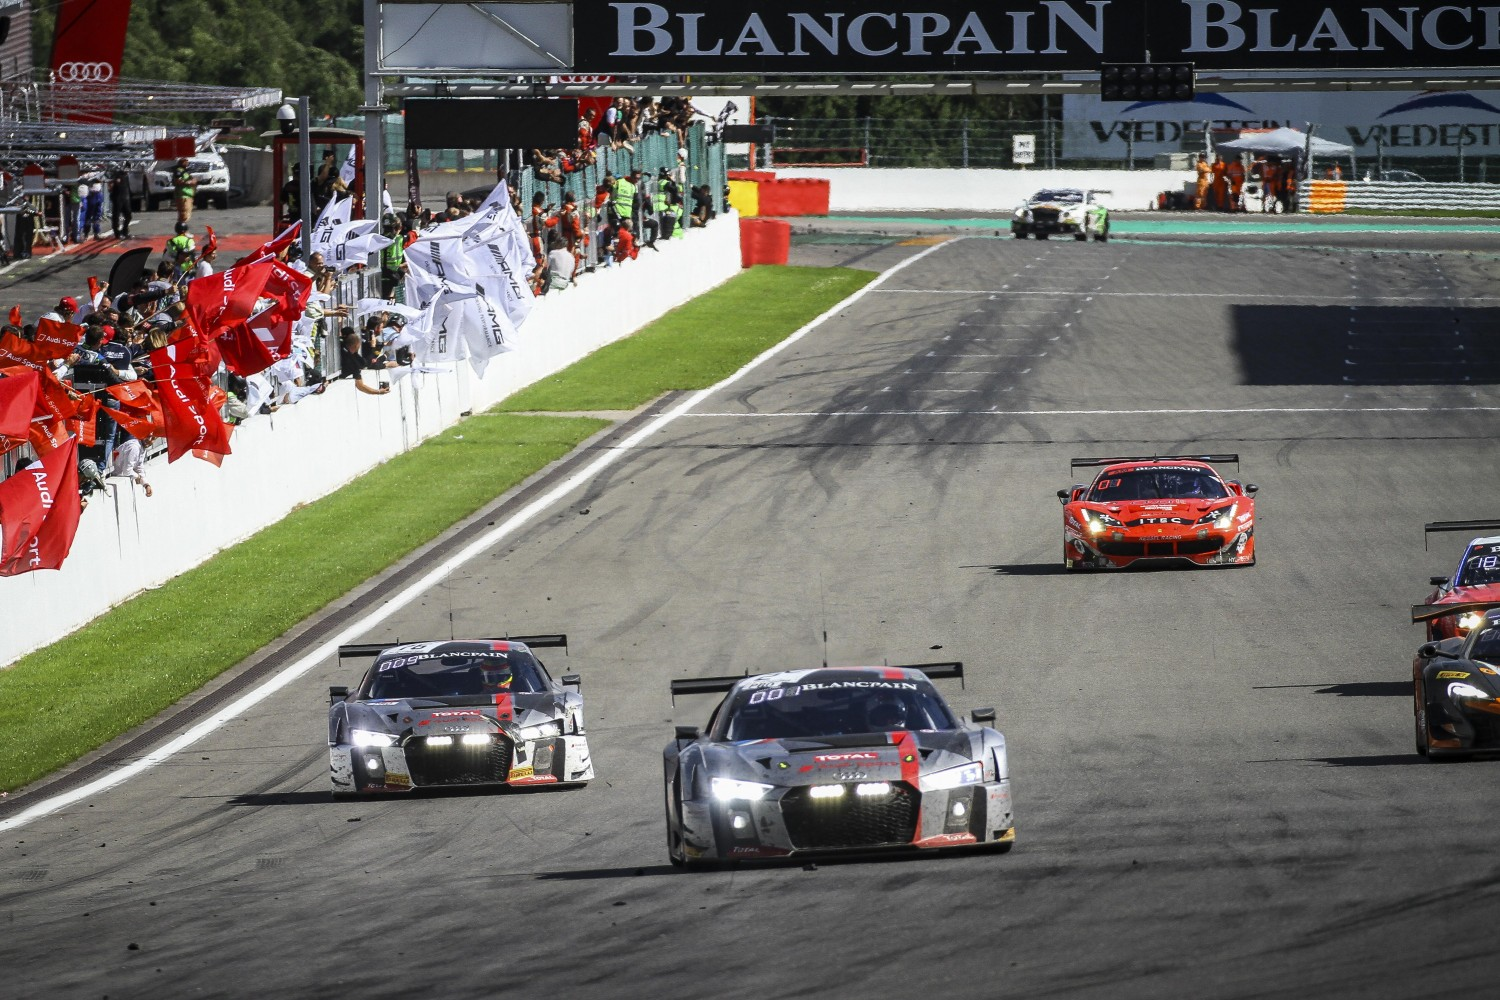 Audi aims for fifth victory in Total 24 Hours of Spa